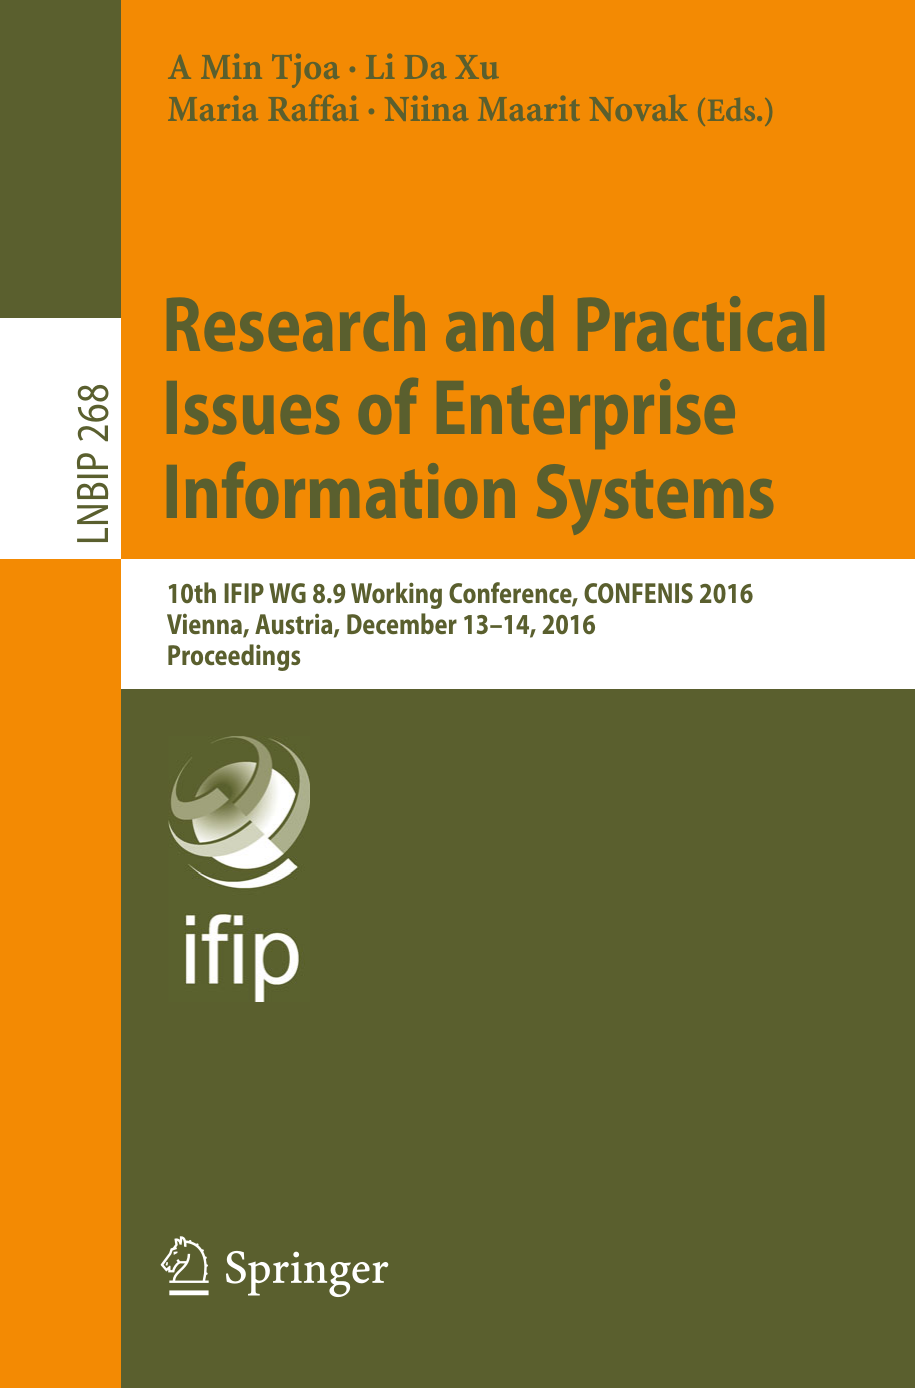 Research-and-Practical-Issues-of-Enterprise-Information